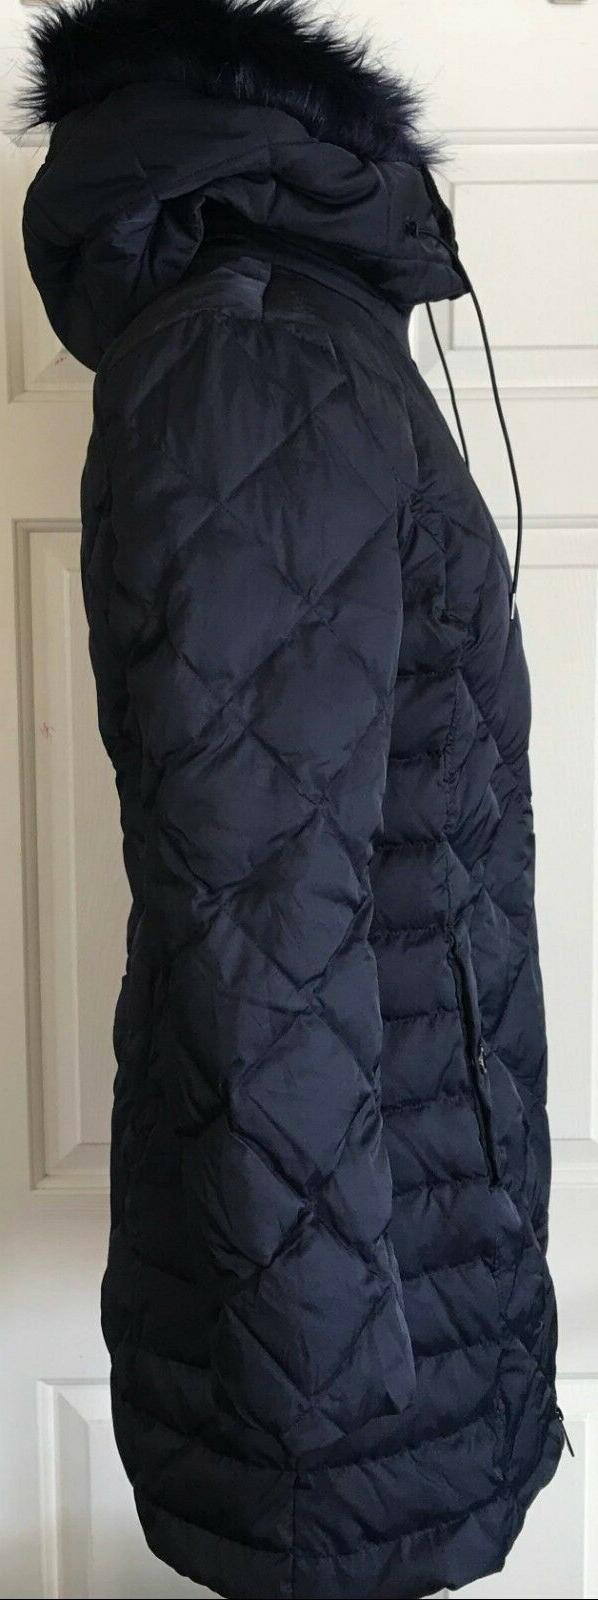 NWT Womens Kenneth Cole Reaction Hooded Coat